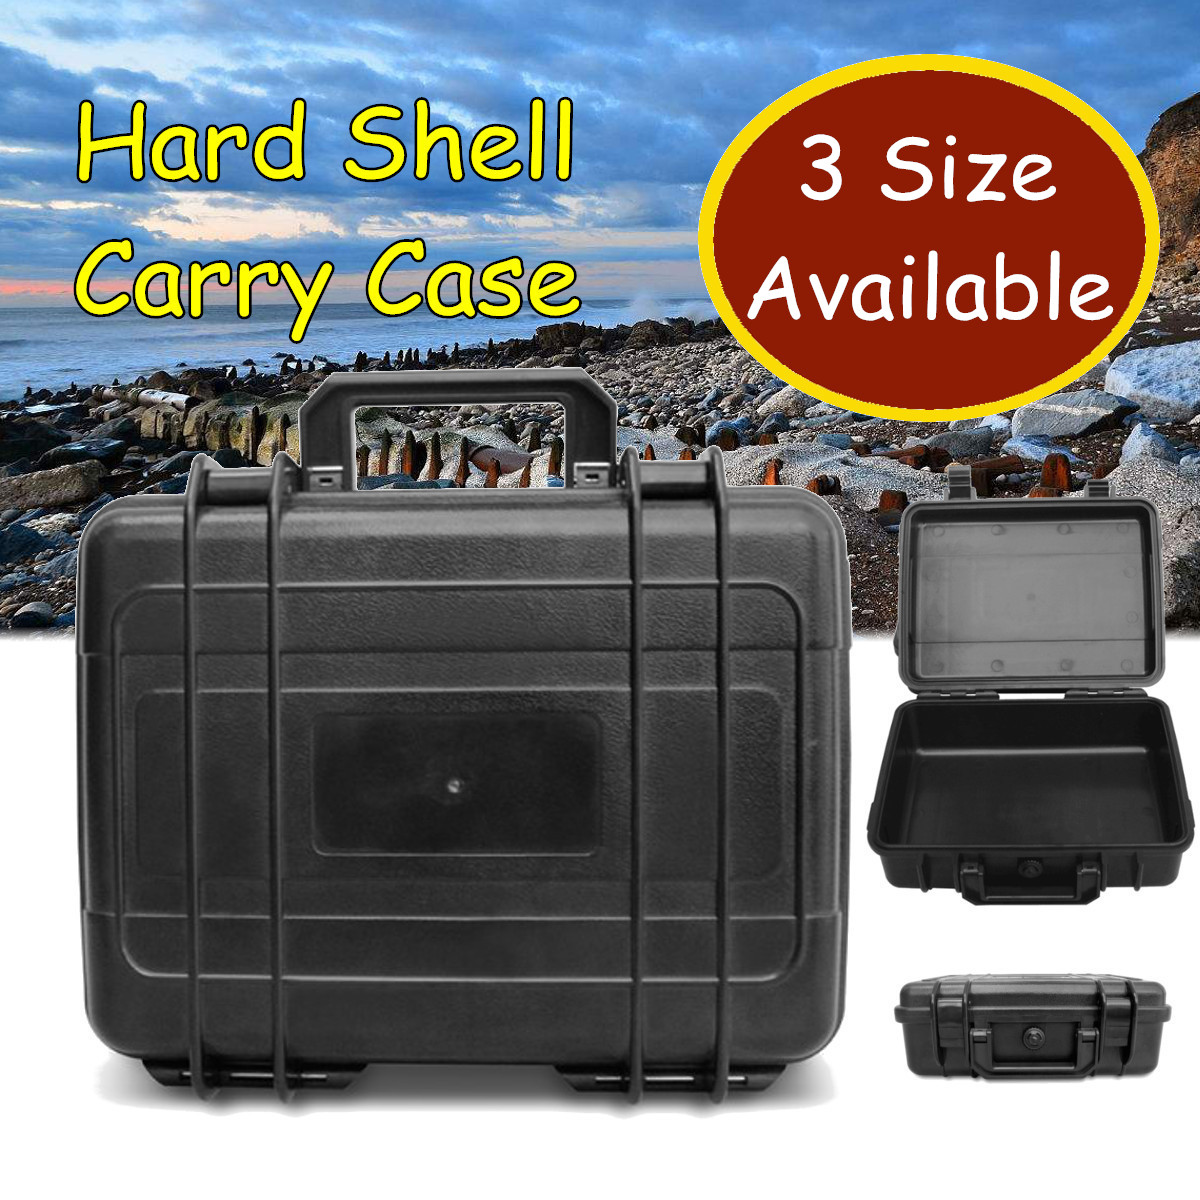 Waterproof Hard Carry Tool Case Plastic Toolbox Equipment Protective Storage Box Organizer Portable Container Black 3 Sizes Tool Cases     - title=